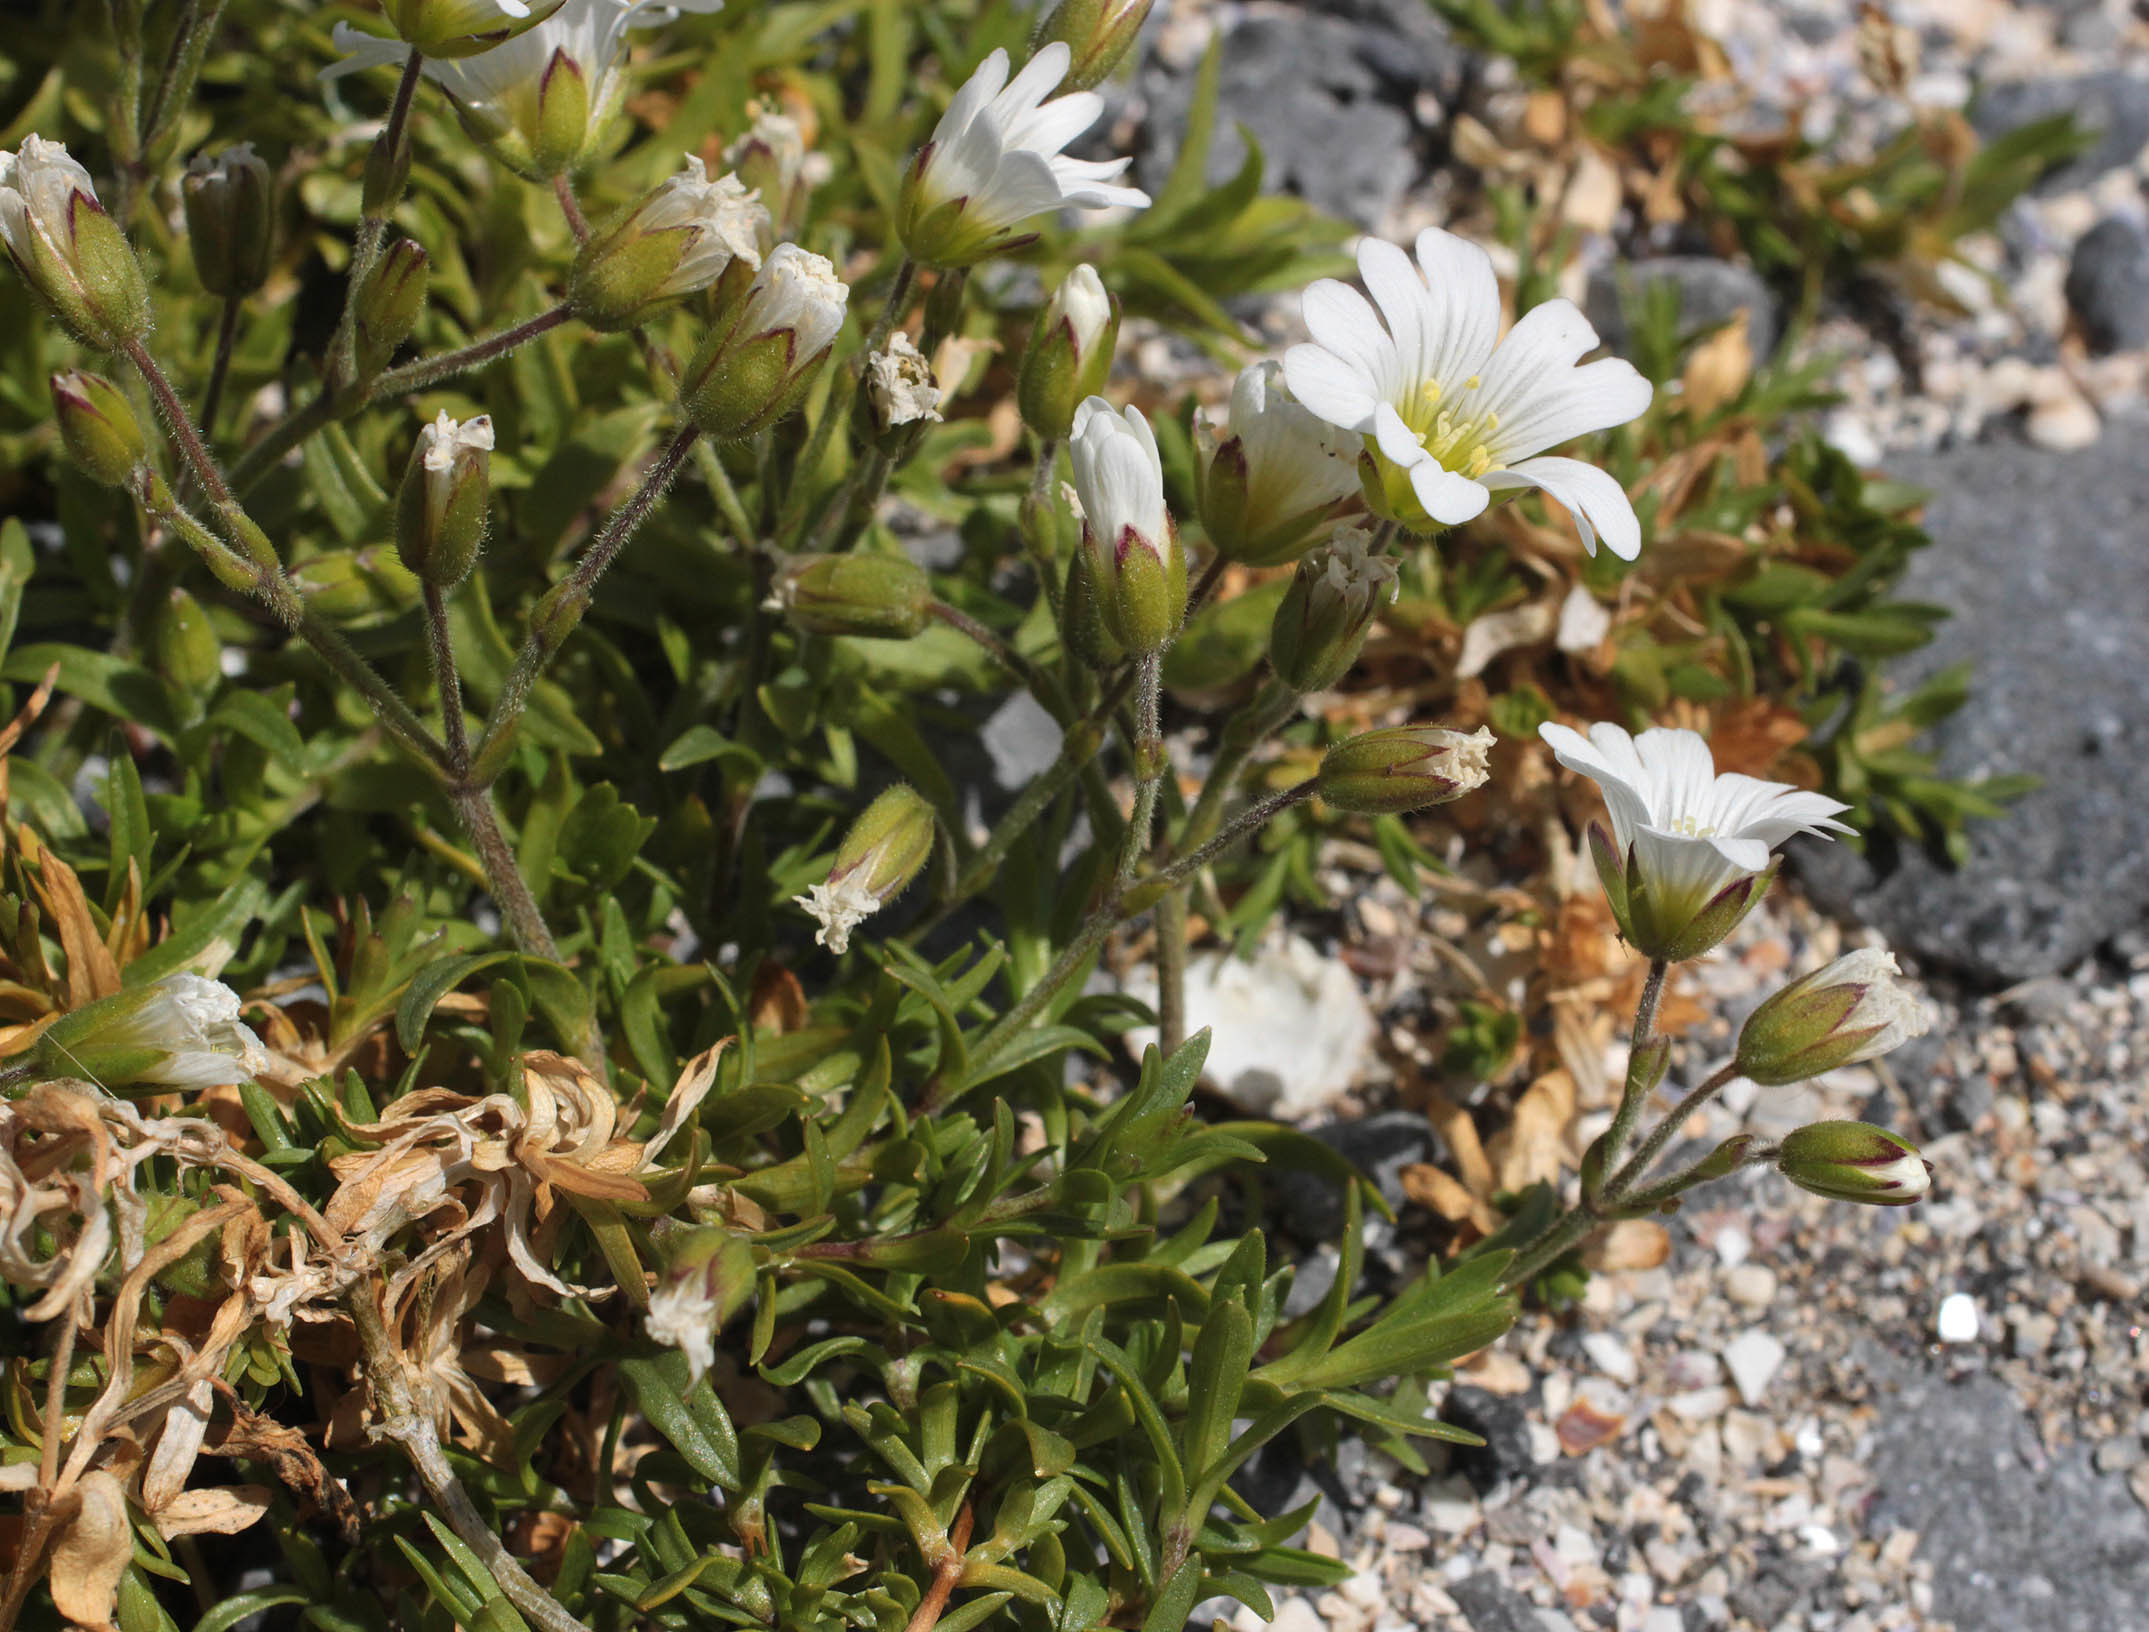 Image of field chickweed